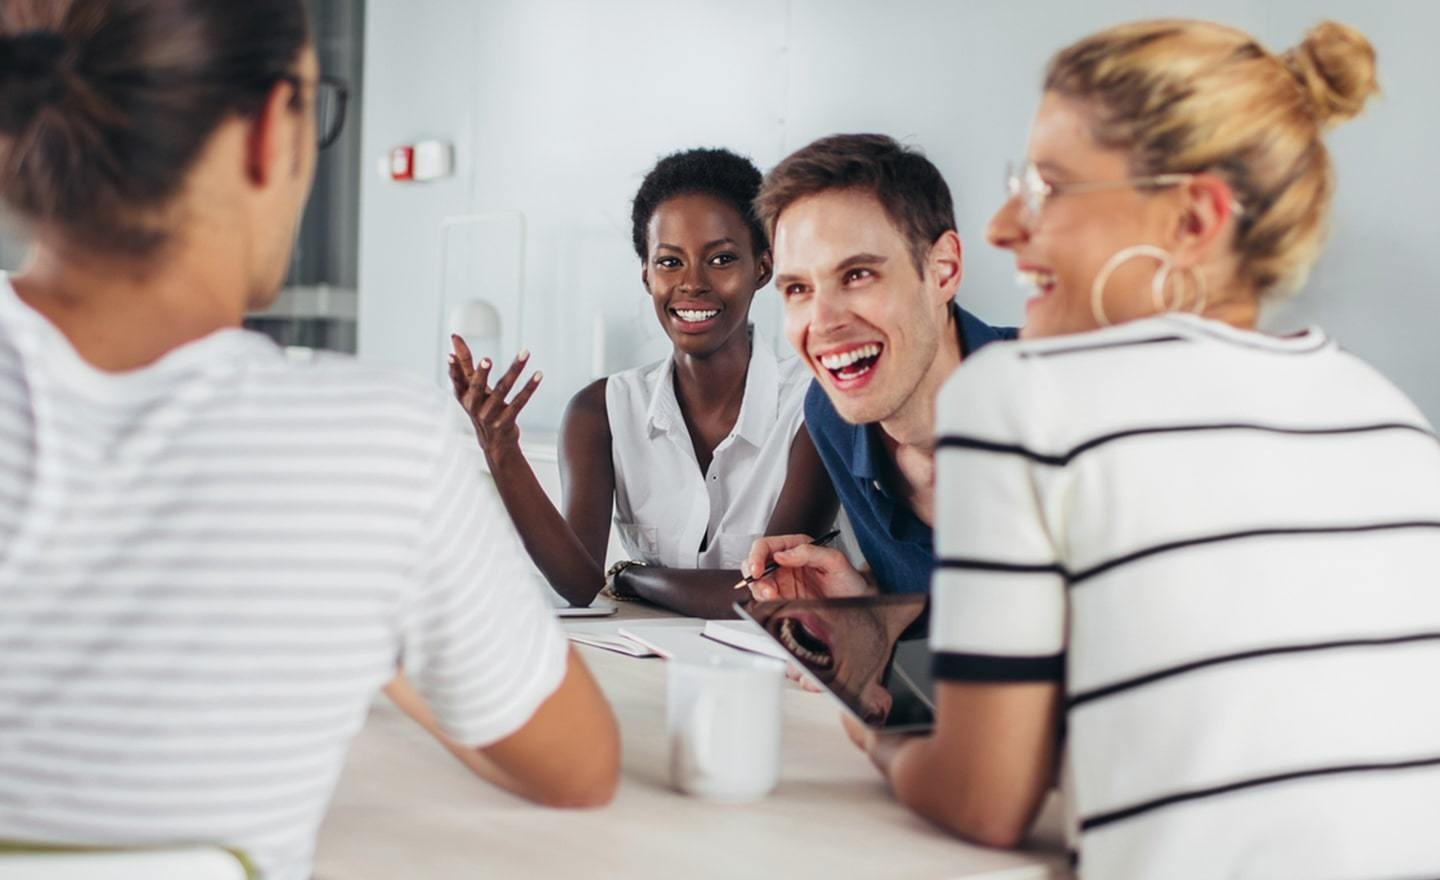 Group of laughing people at a conference table